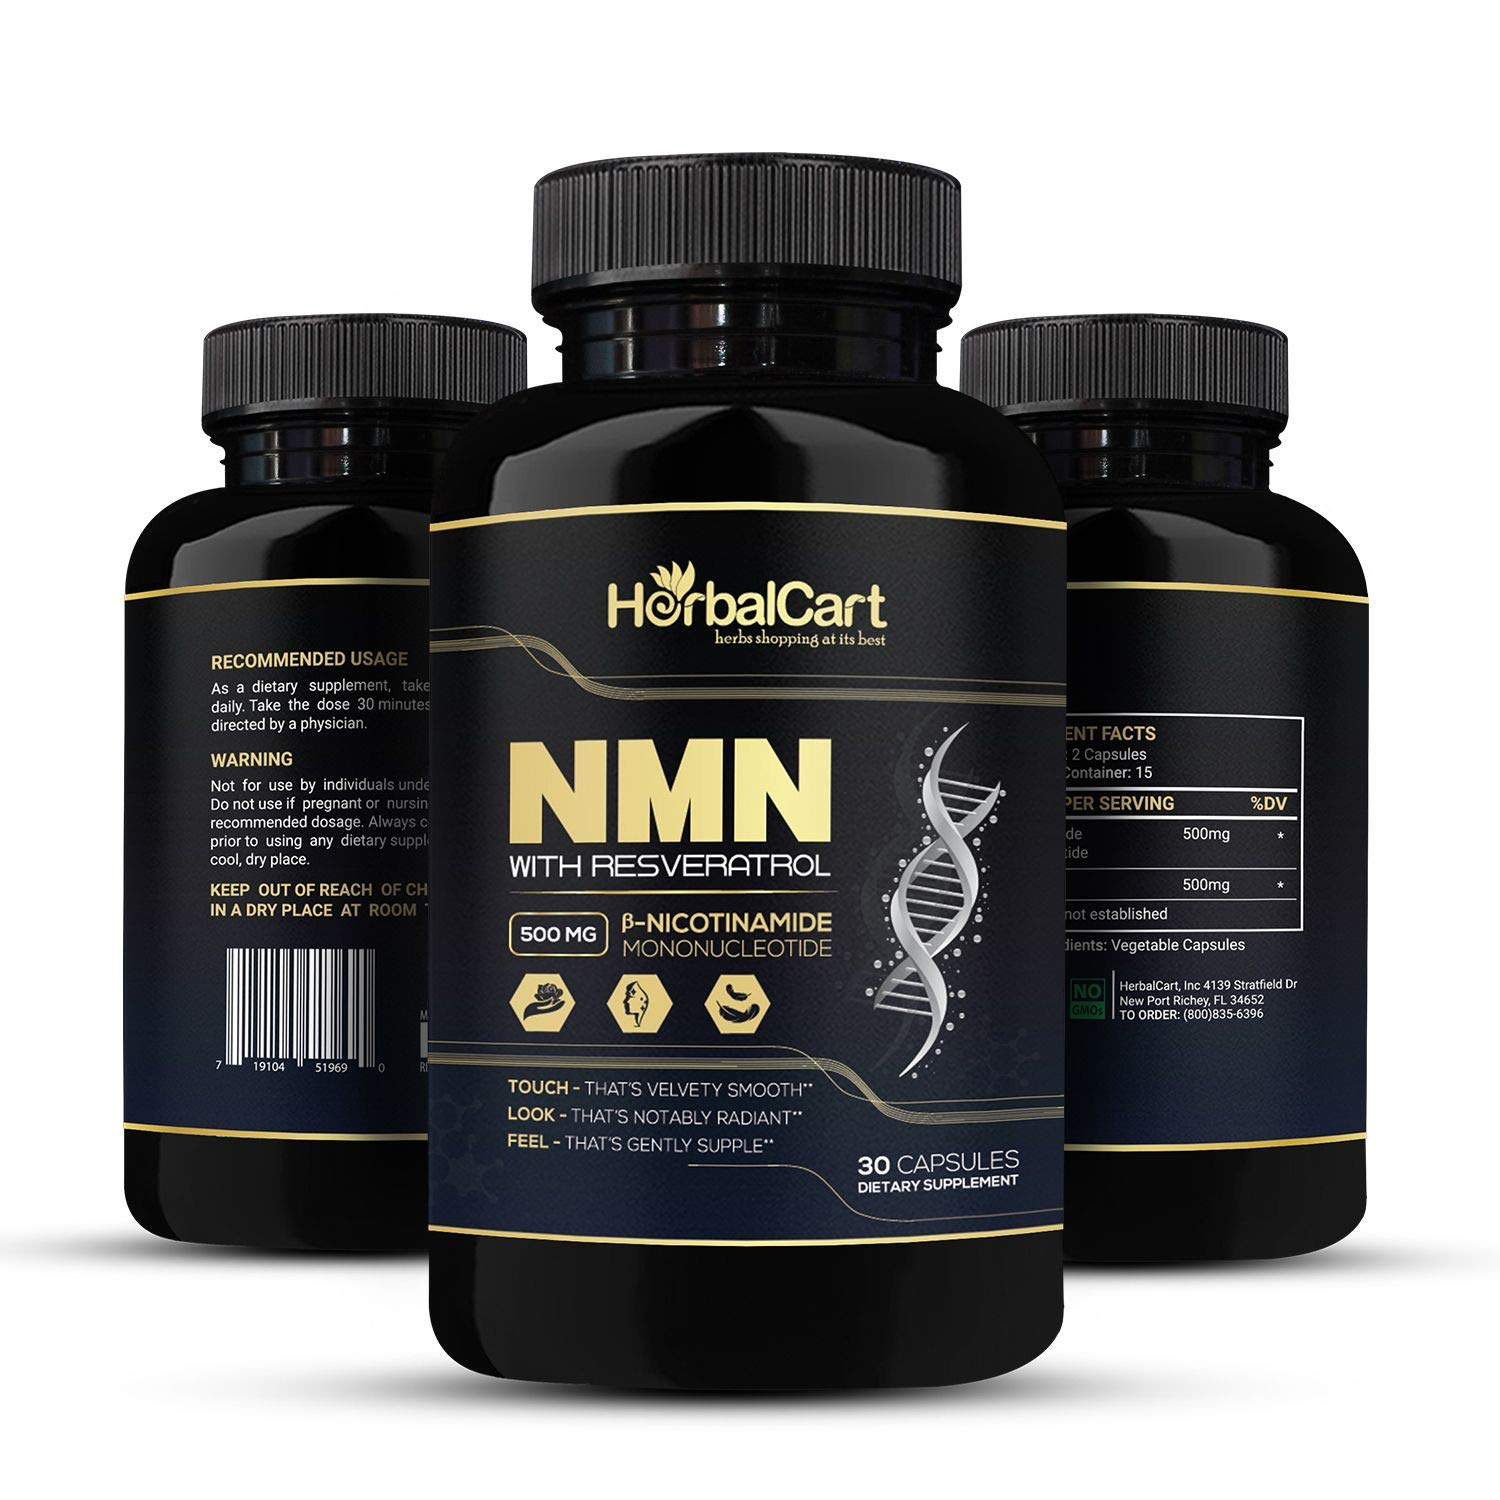 HerbalCart - NMN Supplement with Resveratrol - Best Anti-Aging Pills for Men & Women - Formulated with [ β-Nicotinamide Mononucleotide + Resveratrol ] 500mg - 30 Capsules